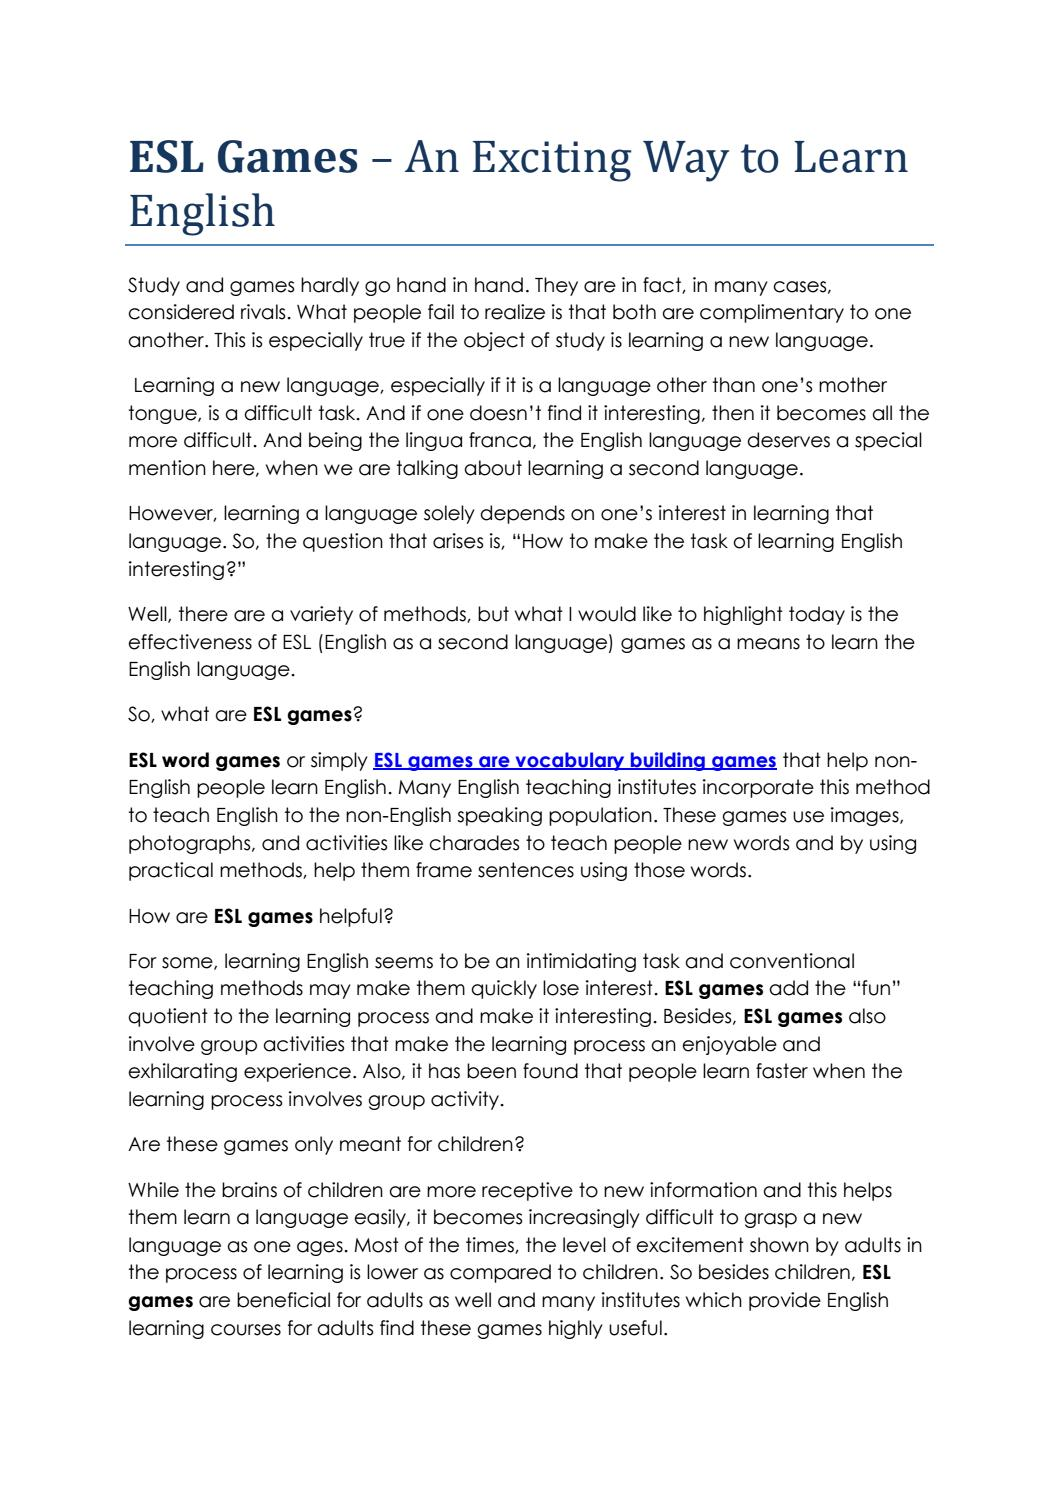 ESL Games – An Exciting Way to Learn English by douglas kritzik - issuu